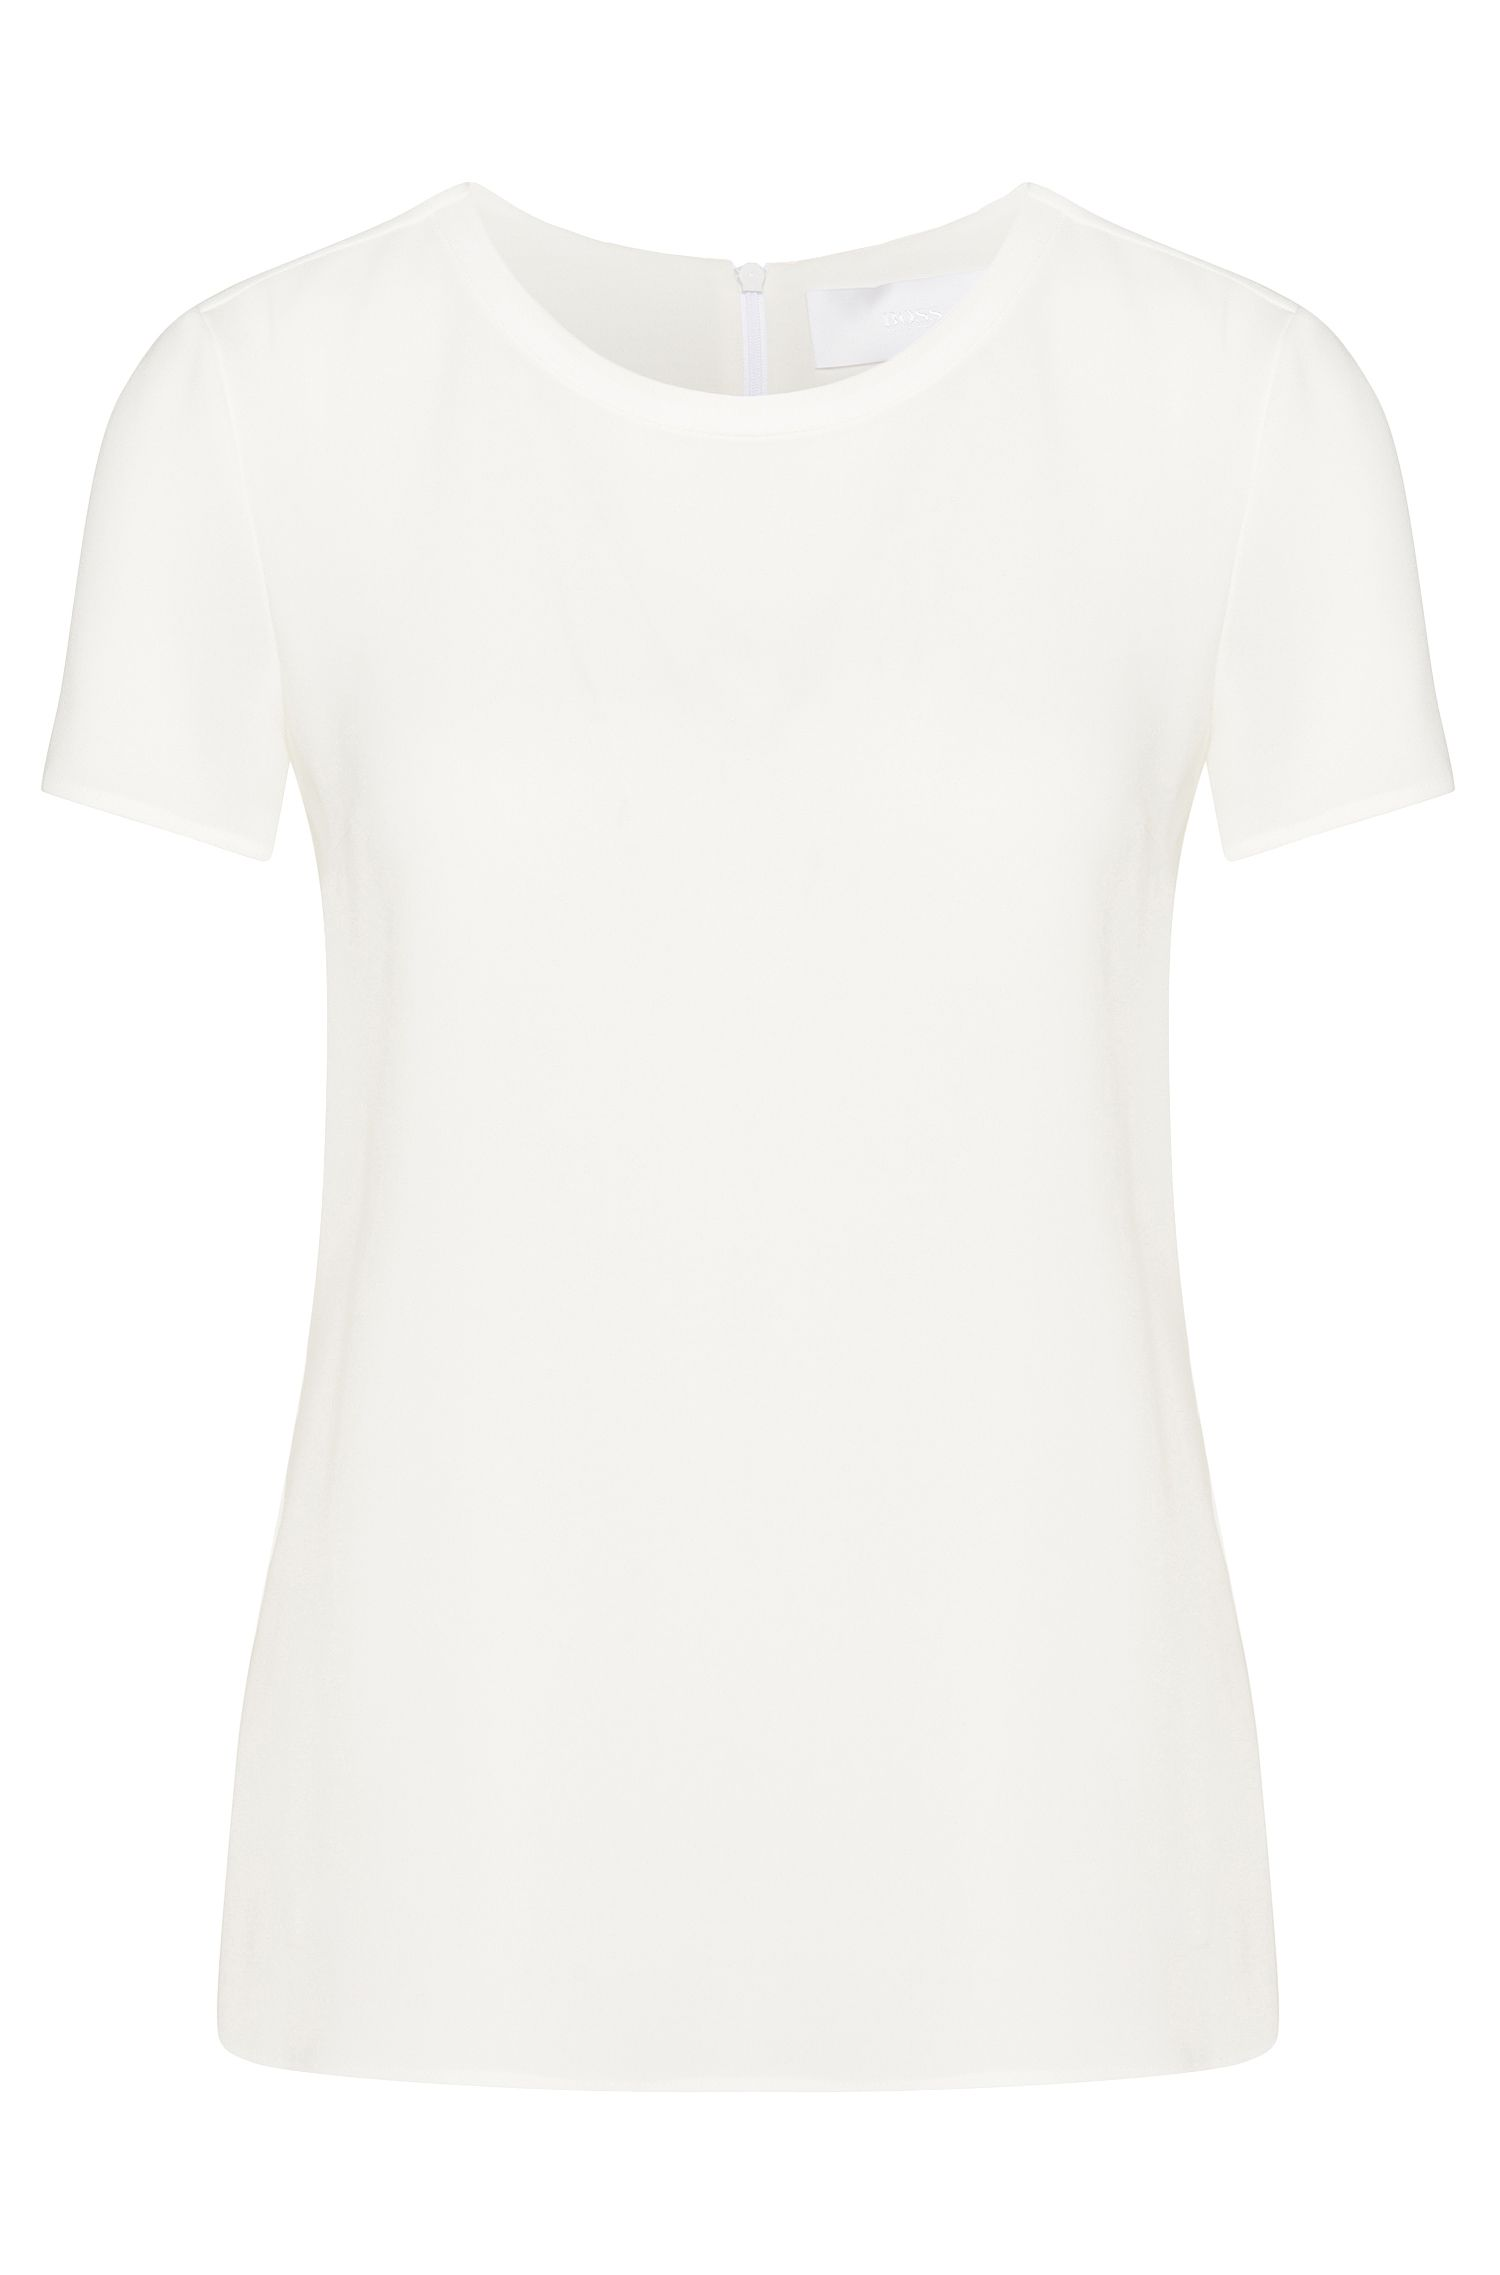 Gently tailored crepe top